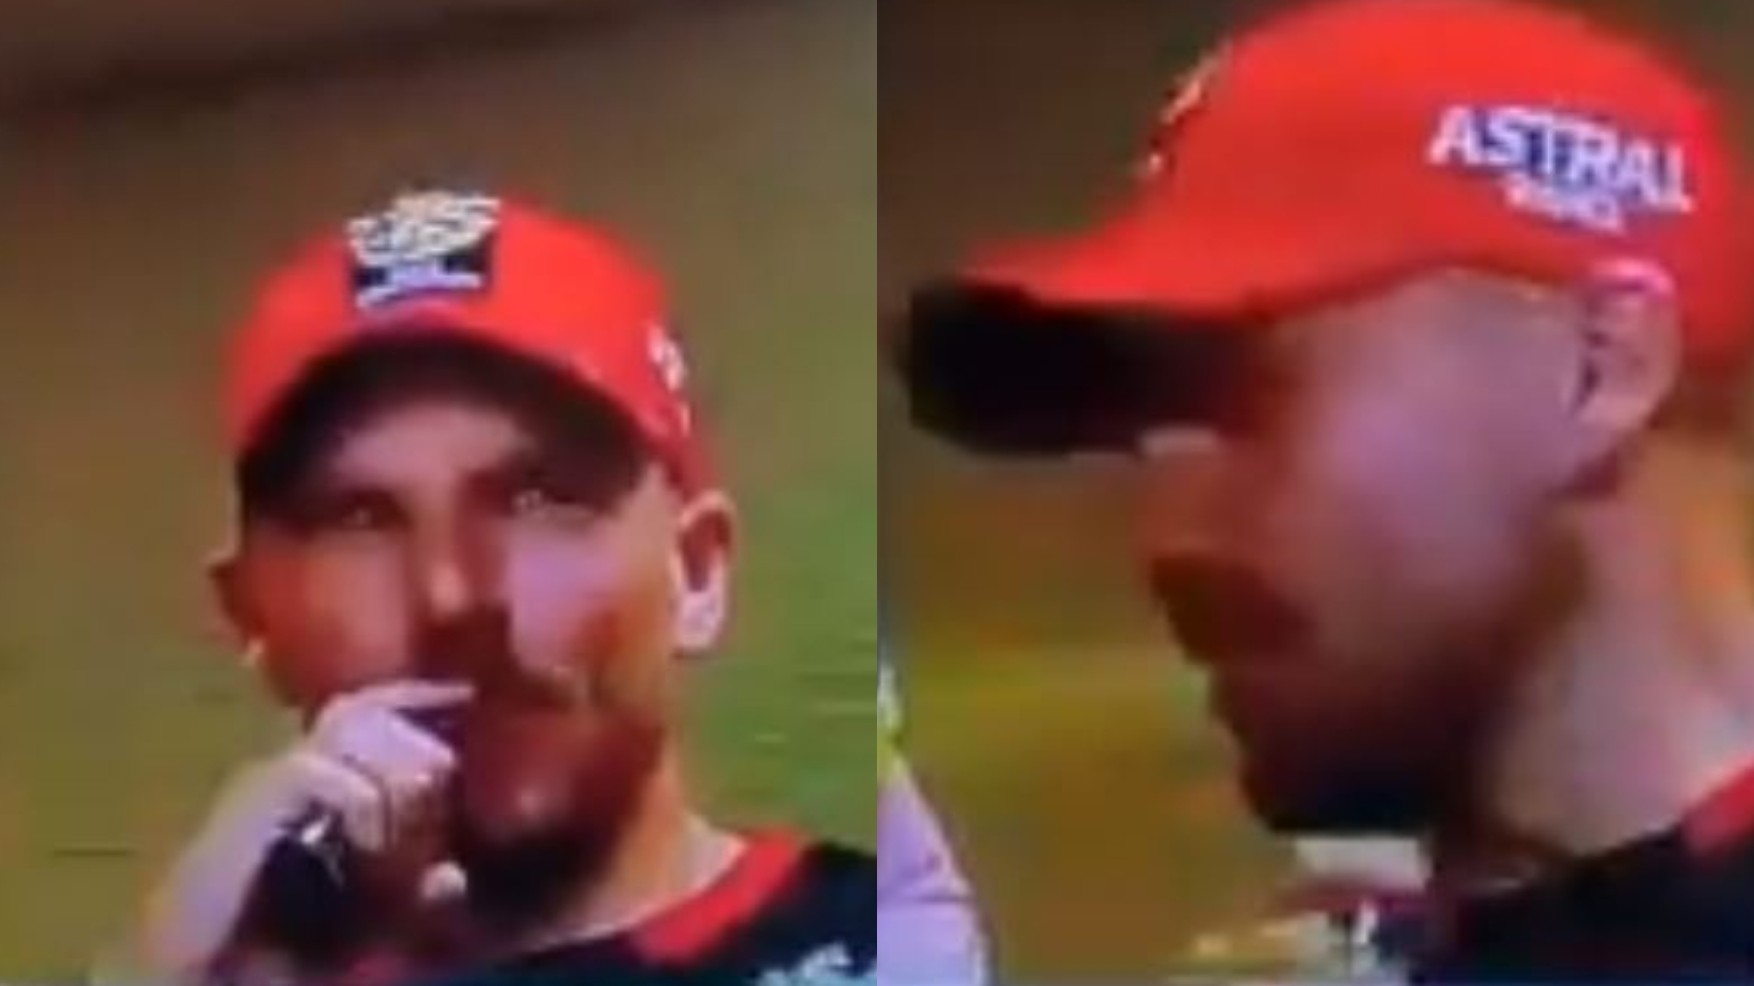 IPL 2020: WATCH- Aaron Finch caught vaping in RCB dressing room during match vs RR